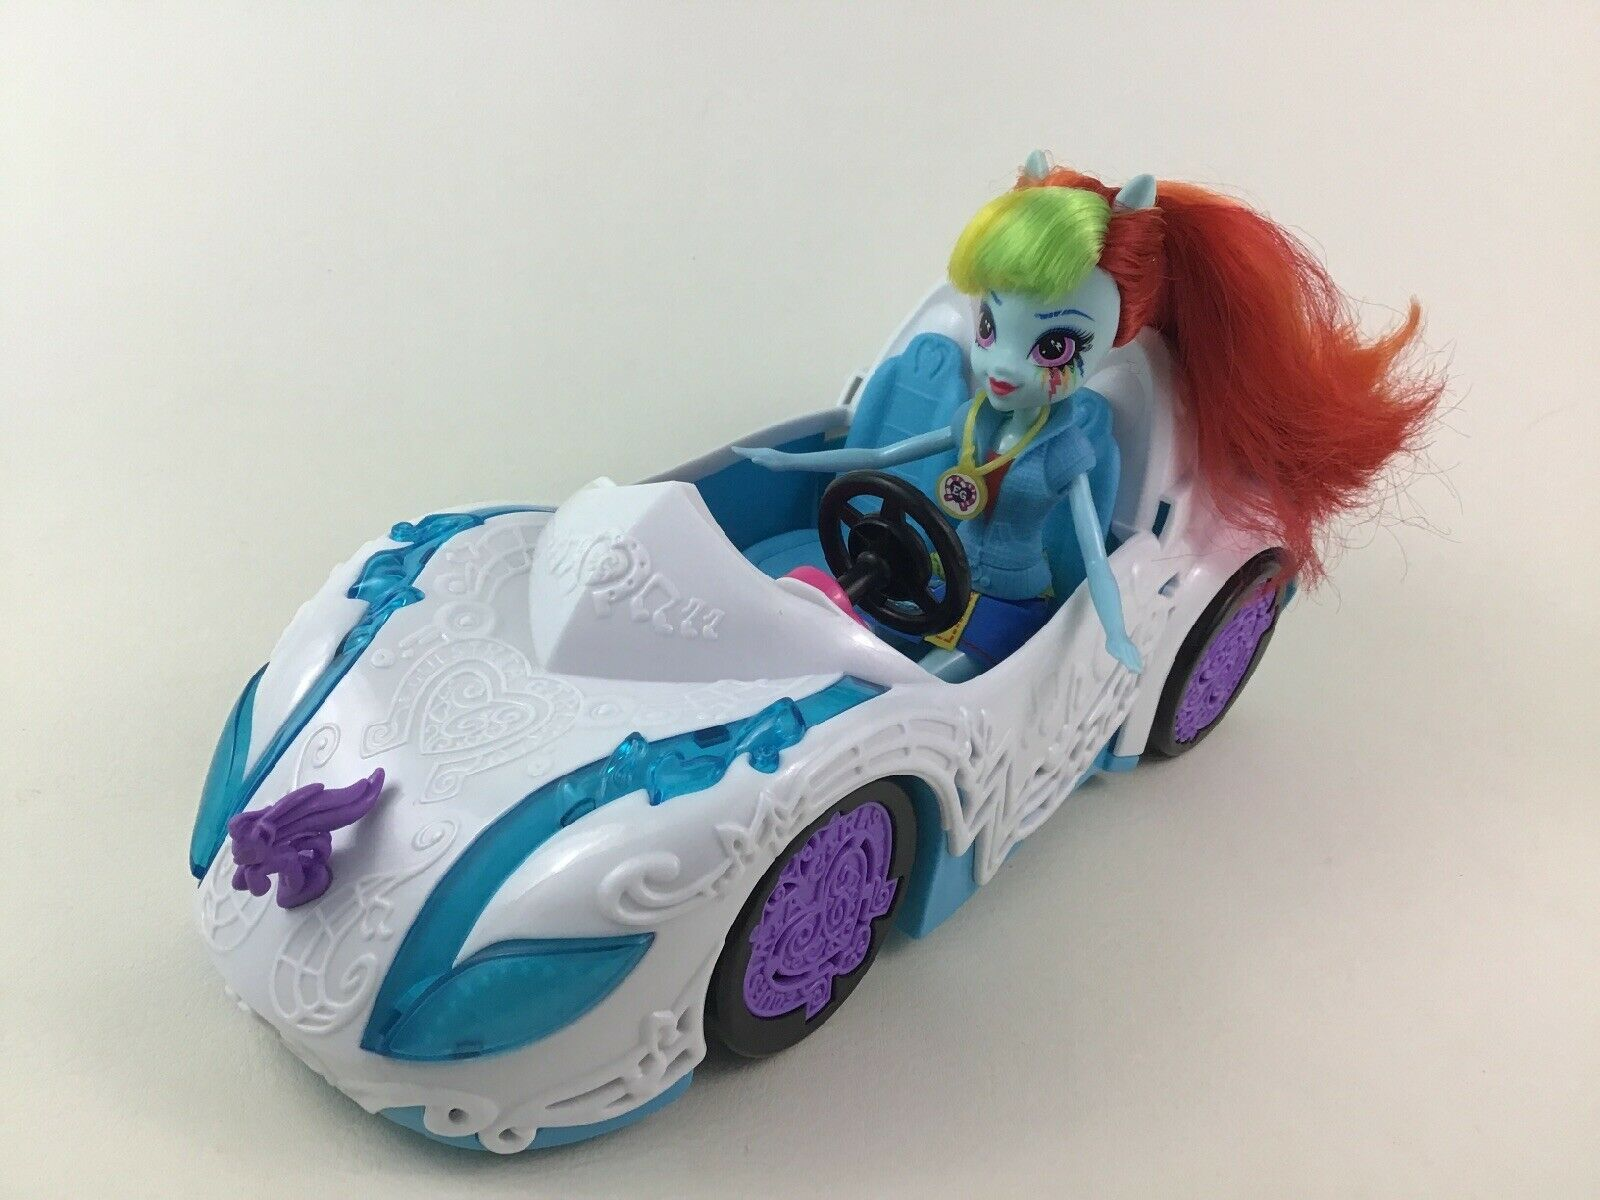 Primary image for My Little Pony Equestrian Girls Doll Rainbow Dash and Car 2pc Lot Hasbro